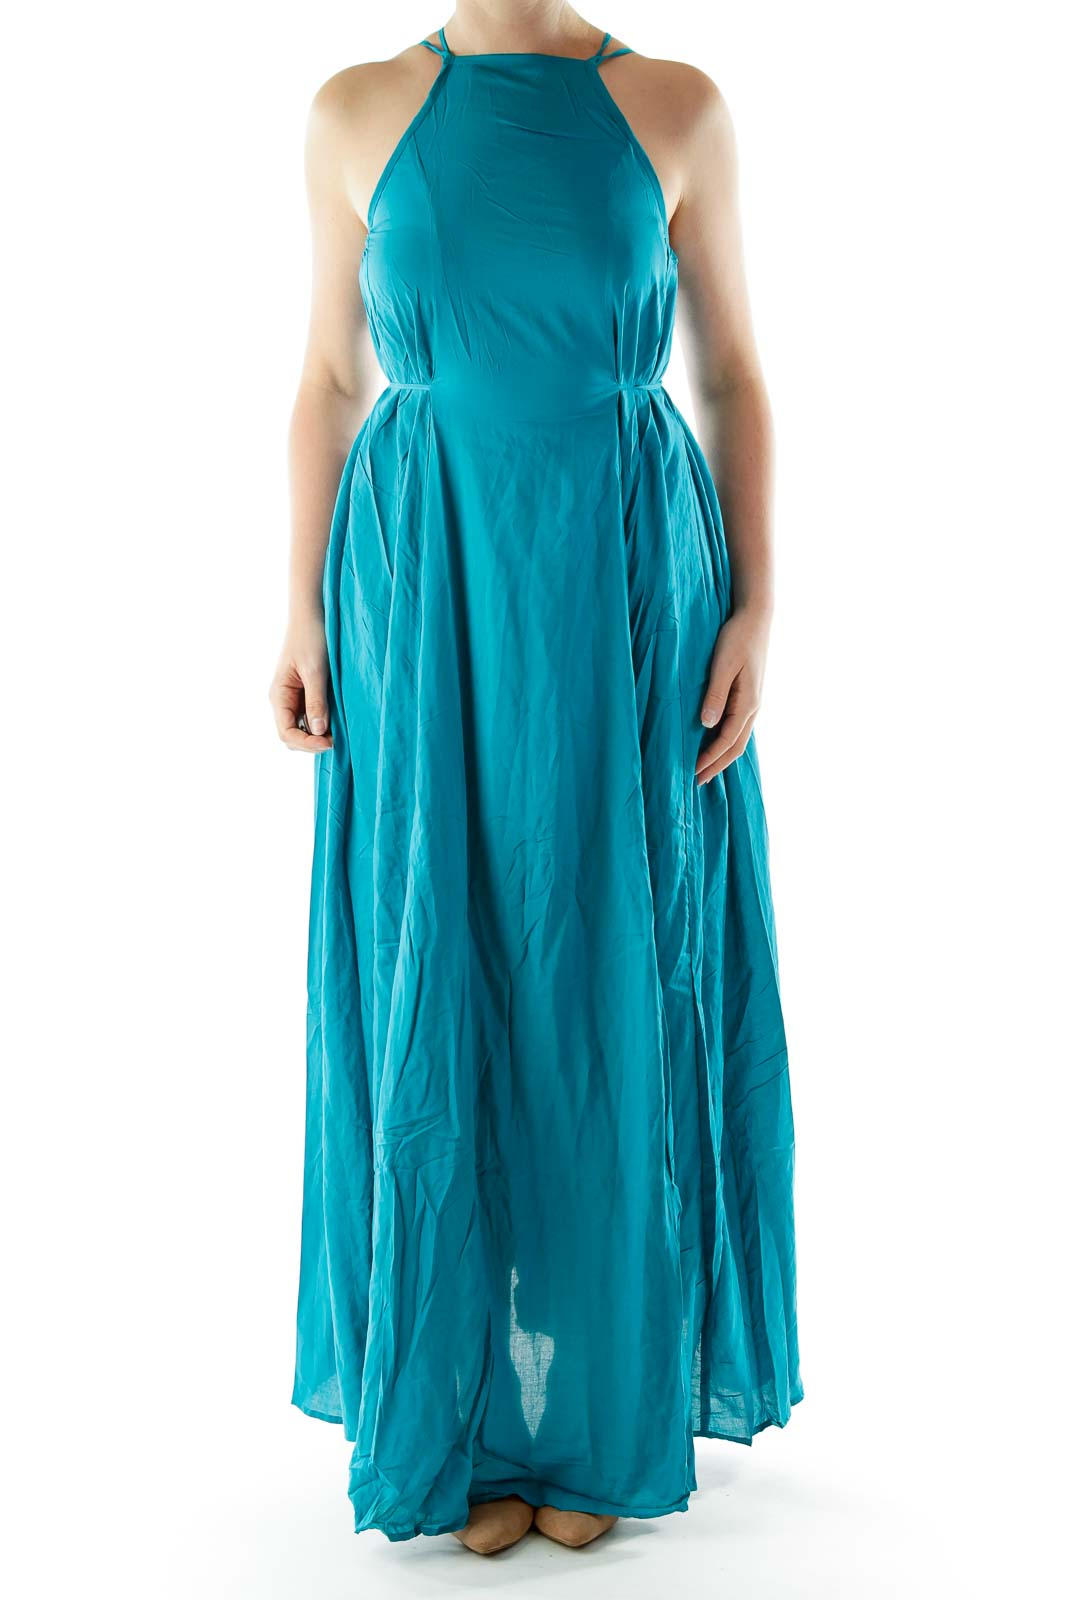 37ffd9ffe7 Shop Turquoise Racerback Maxi Dress clothing and handbags at SilkRoll.  Trade with us!